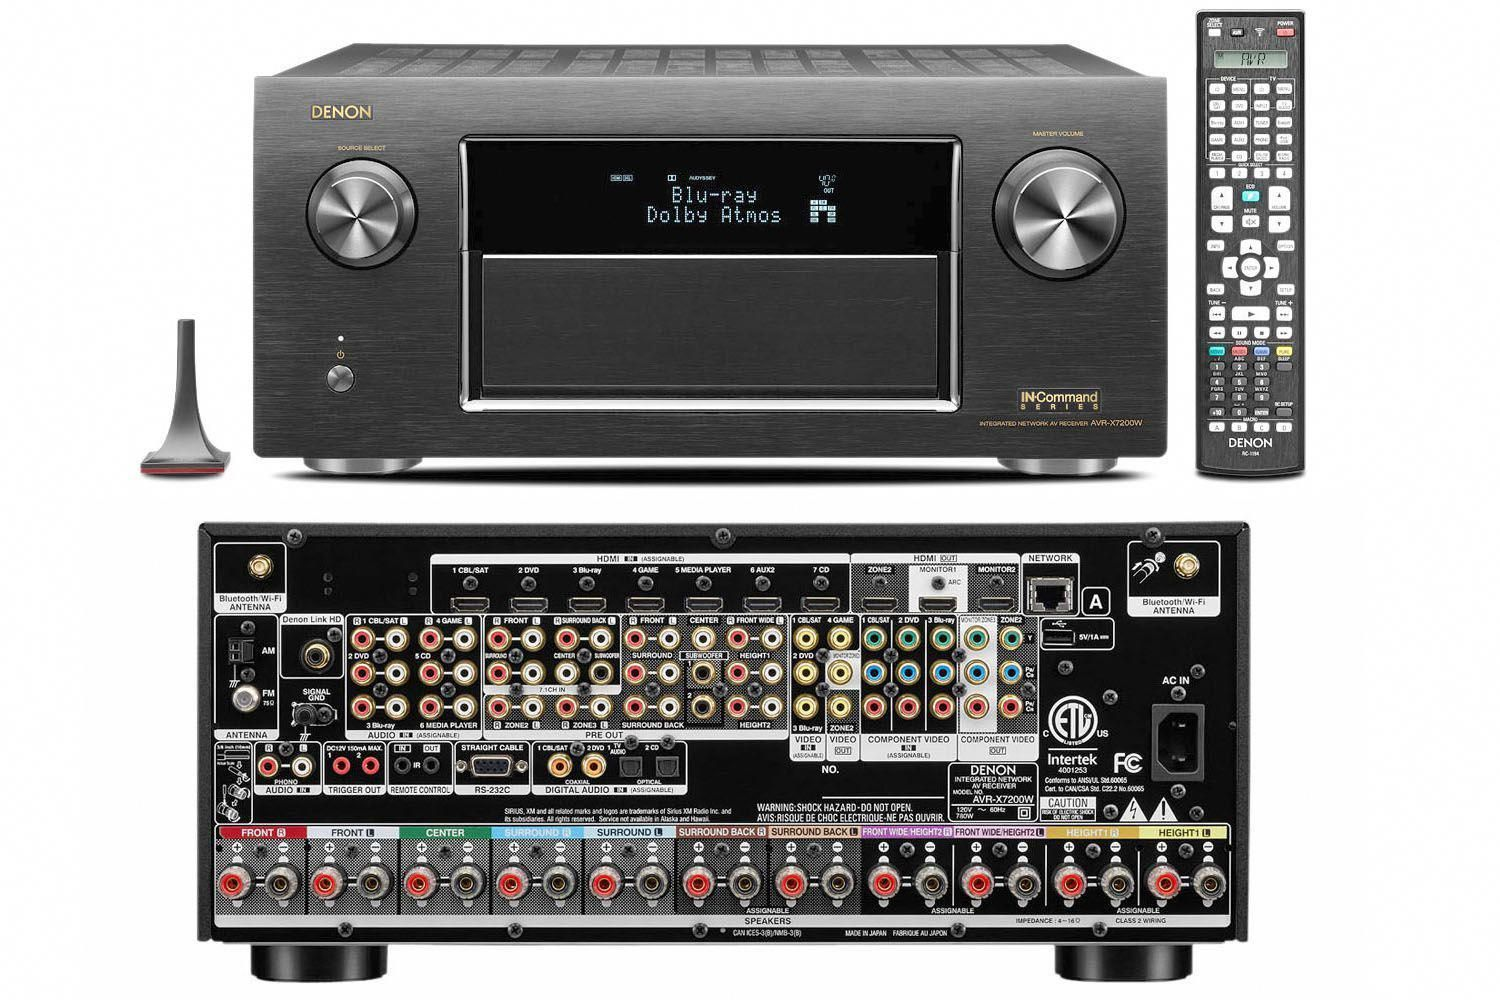 The Denon Avr X7200wa Home Theater Receiver Features Dolby Atmos And Dts X Audio Decoding A Home Theater Best Home Theater Best Home Theater Receiver